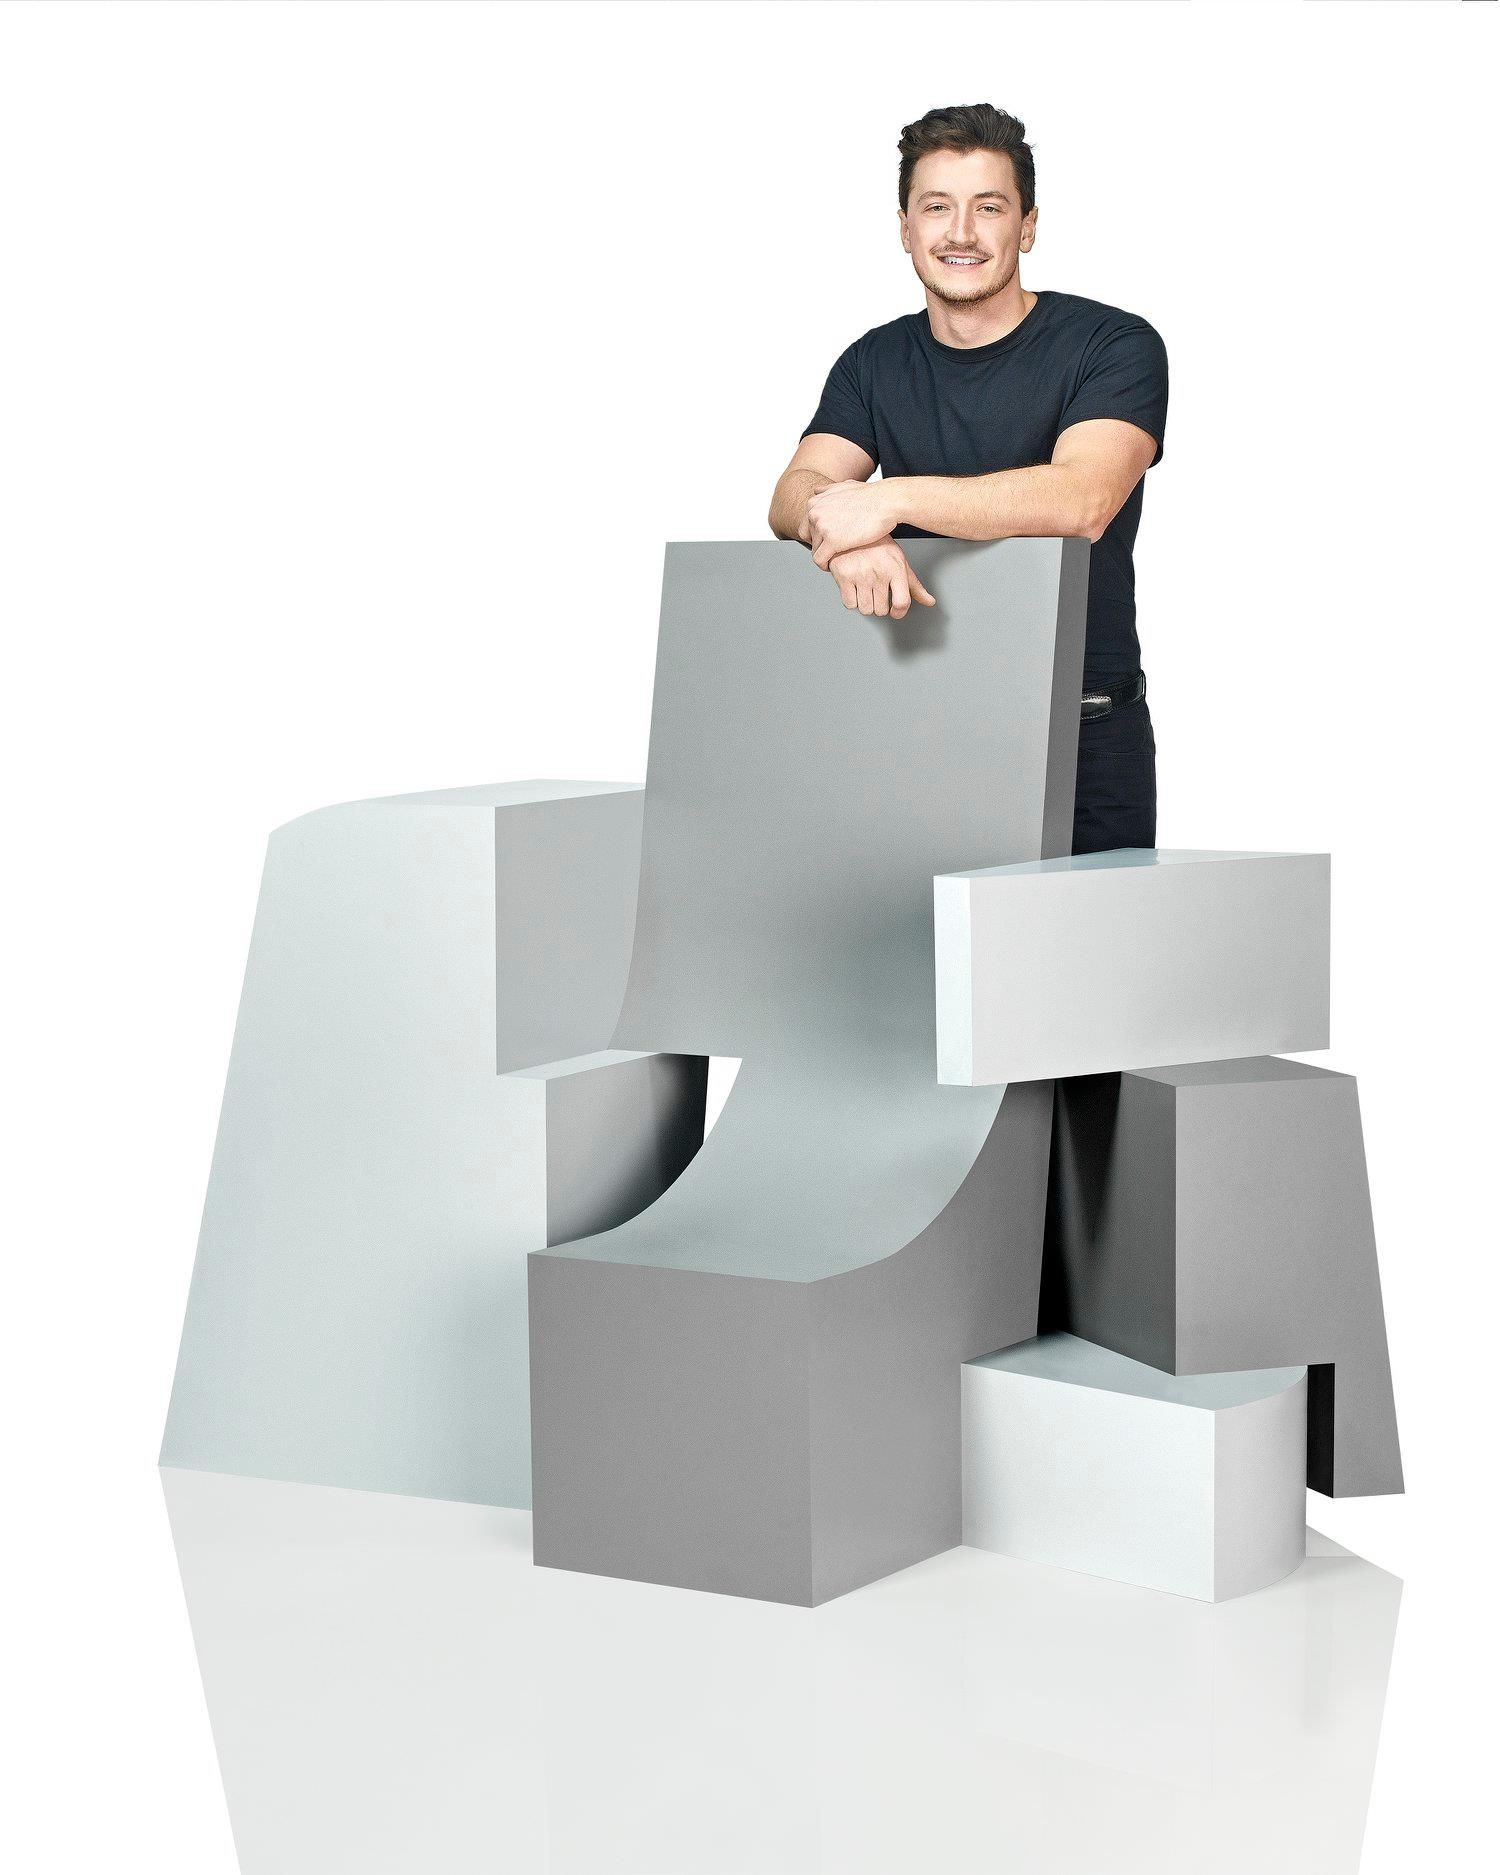 Student Greg Genter posing with his chair design